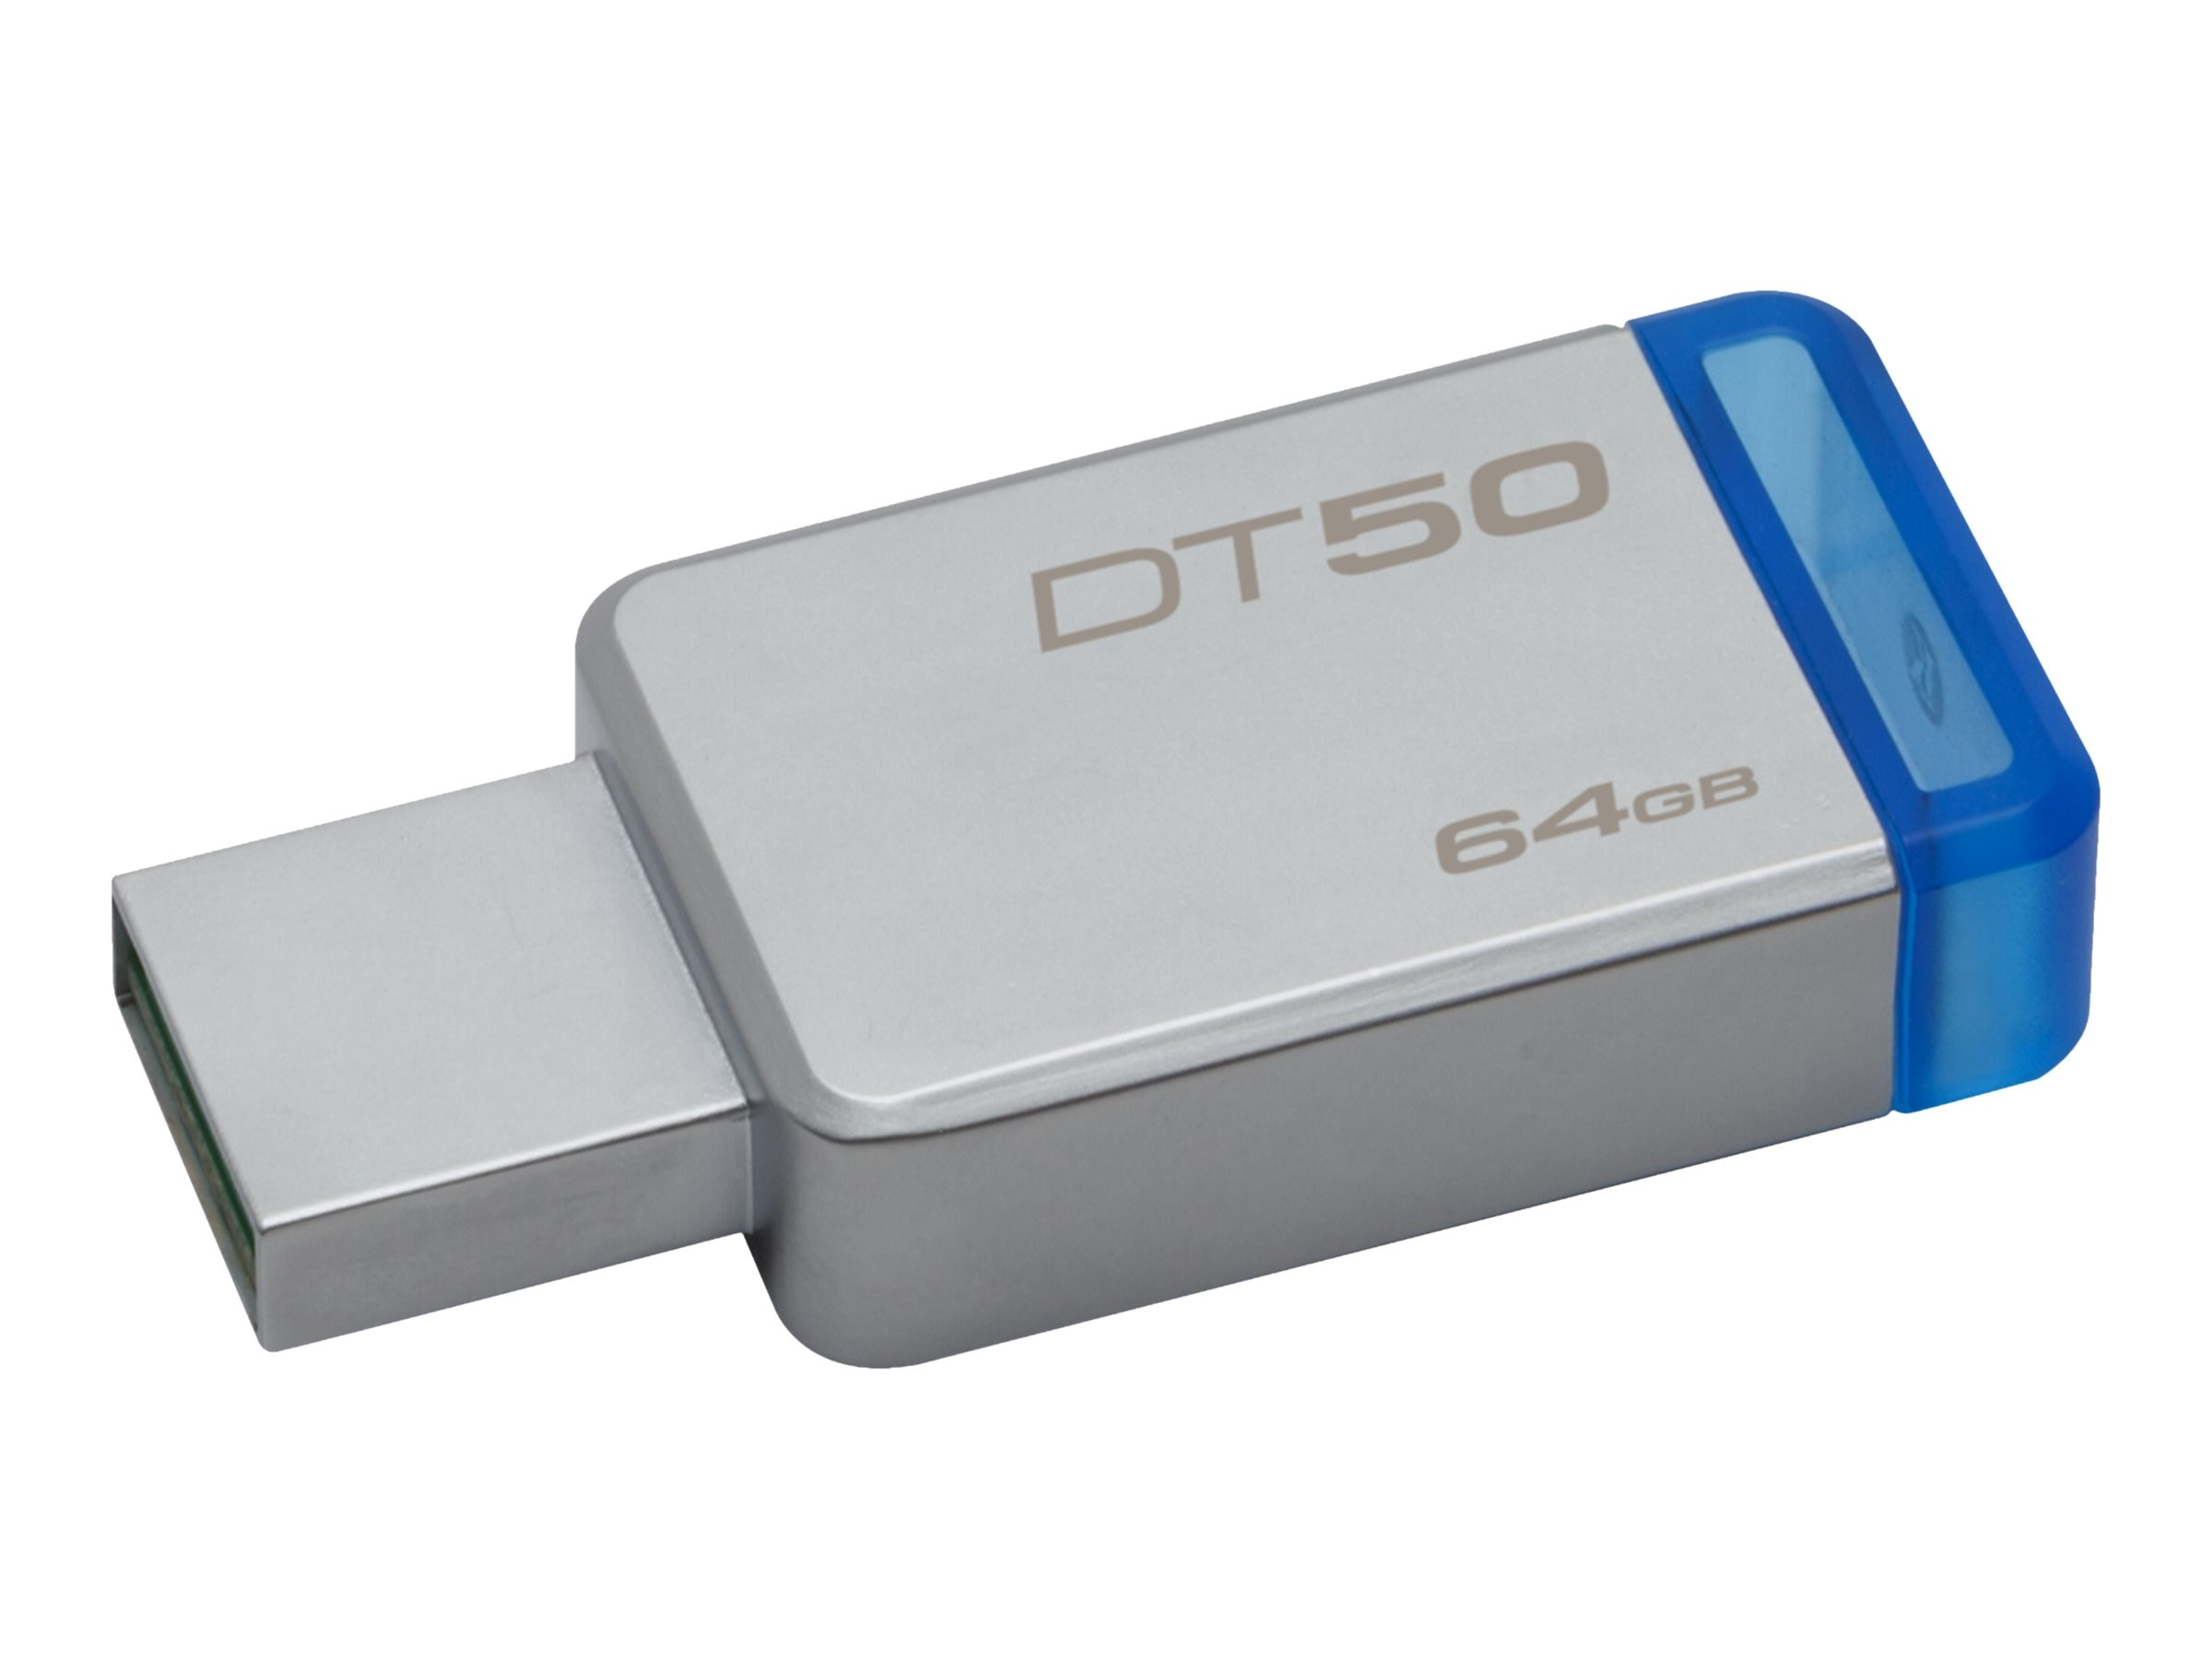 Kingston DT50/64GB Image 1